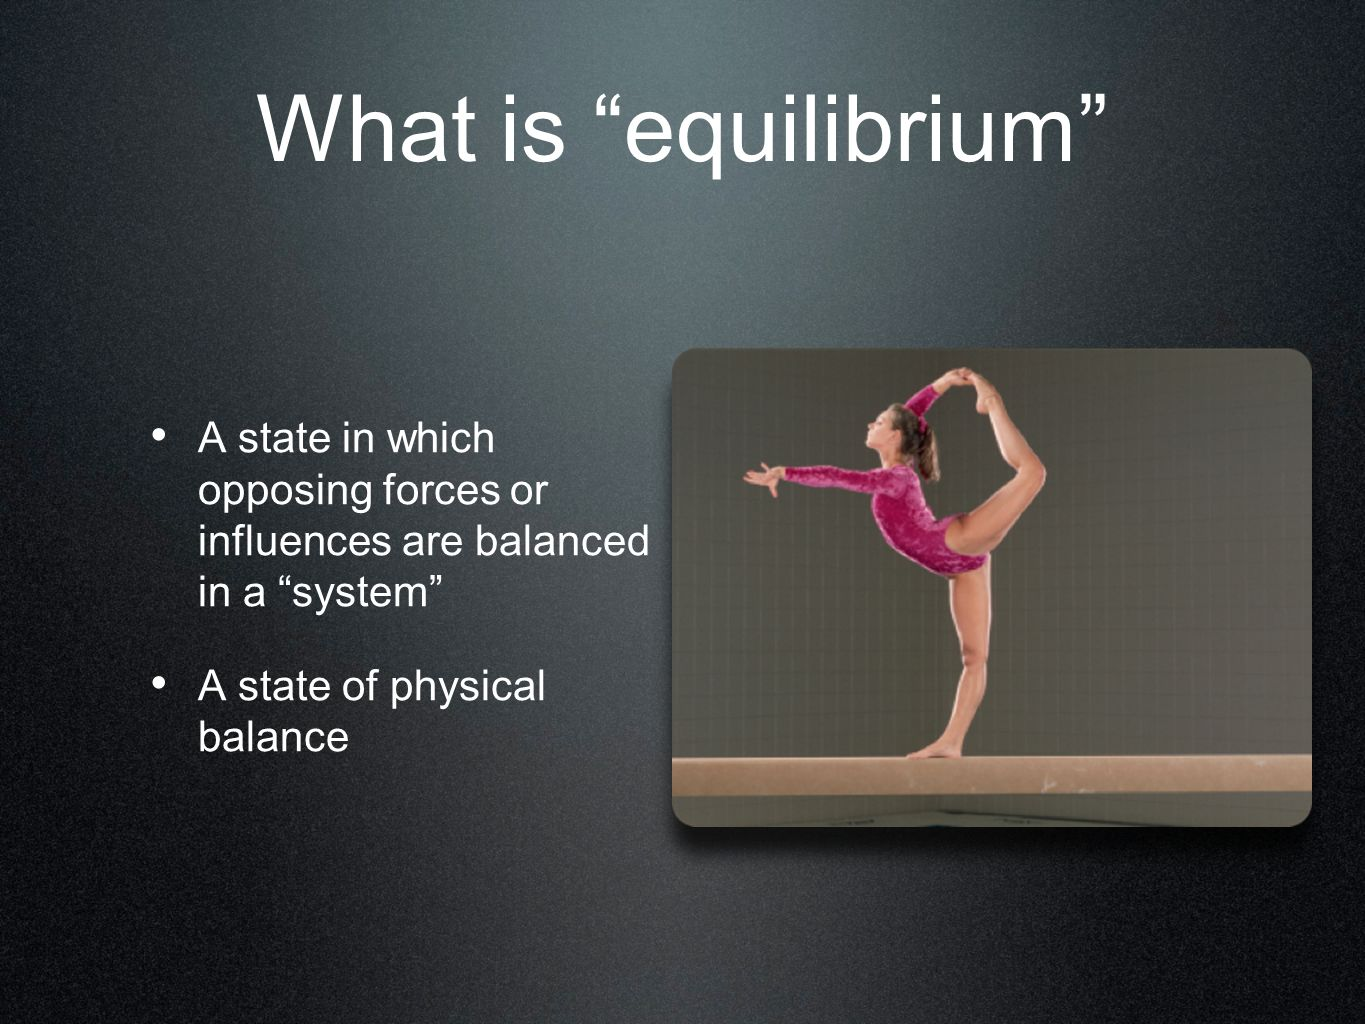 What is equilibrium A state in which opposing forces or influences are balanced in a system A state of physical balance.